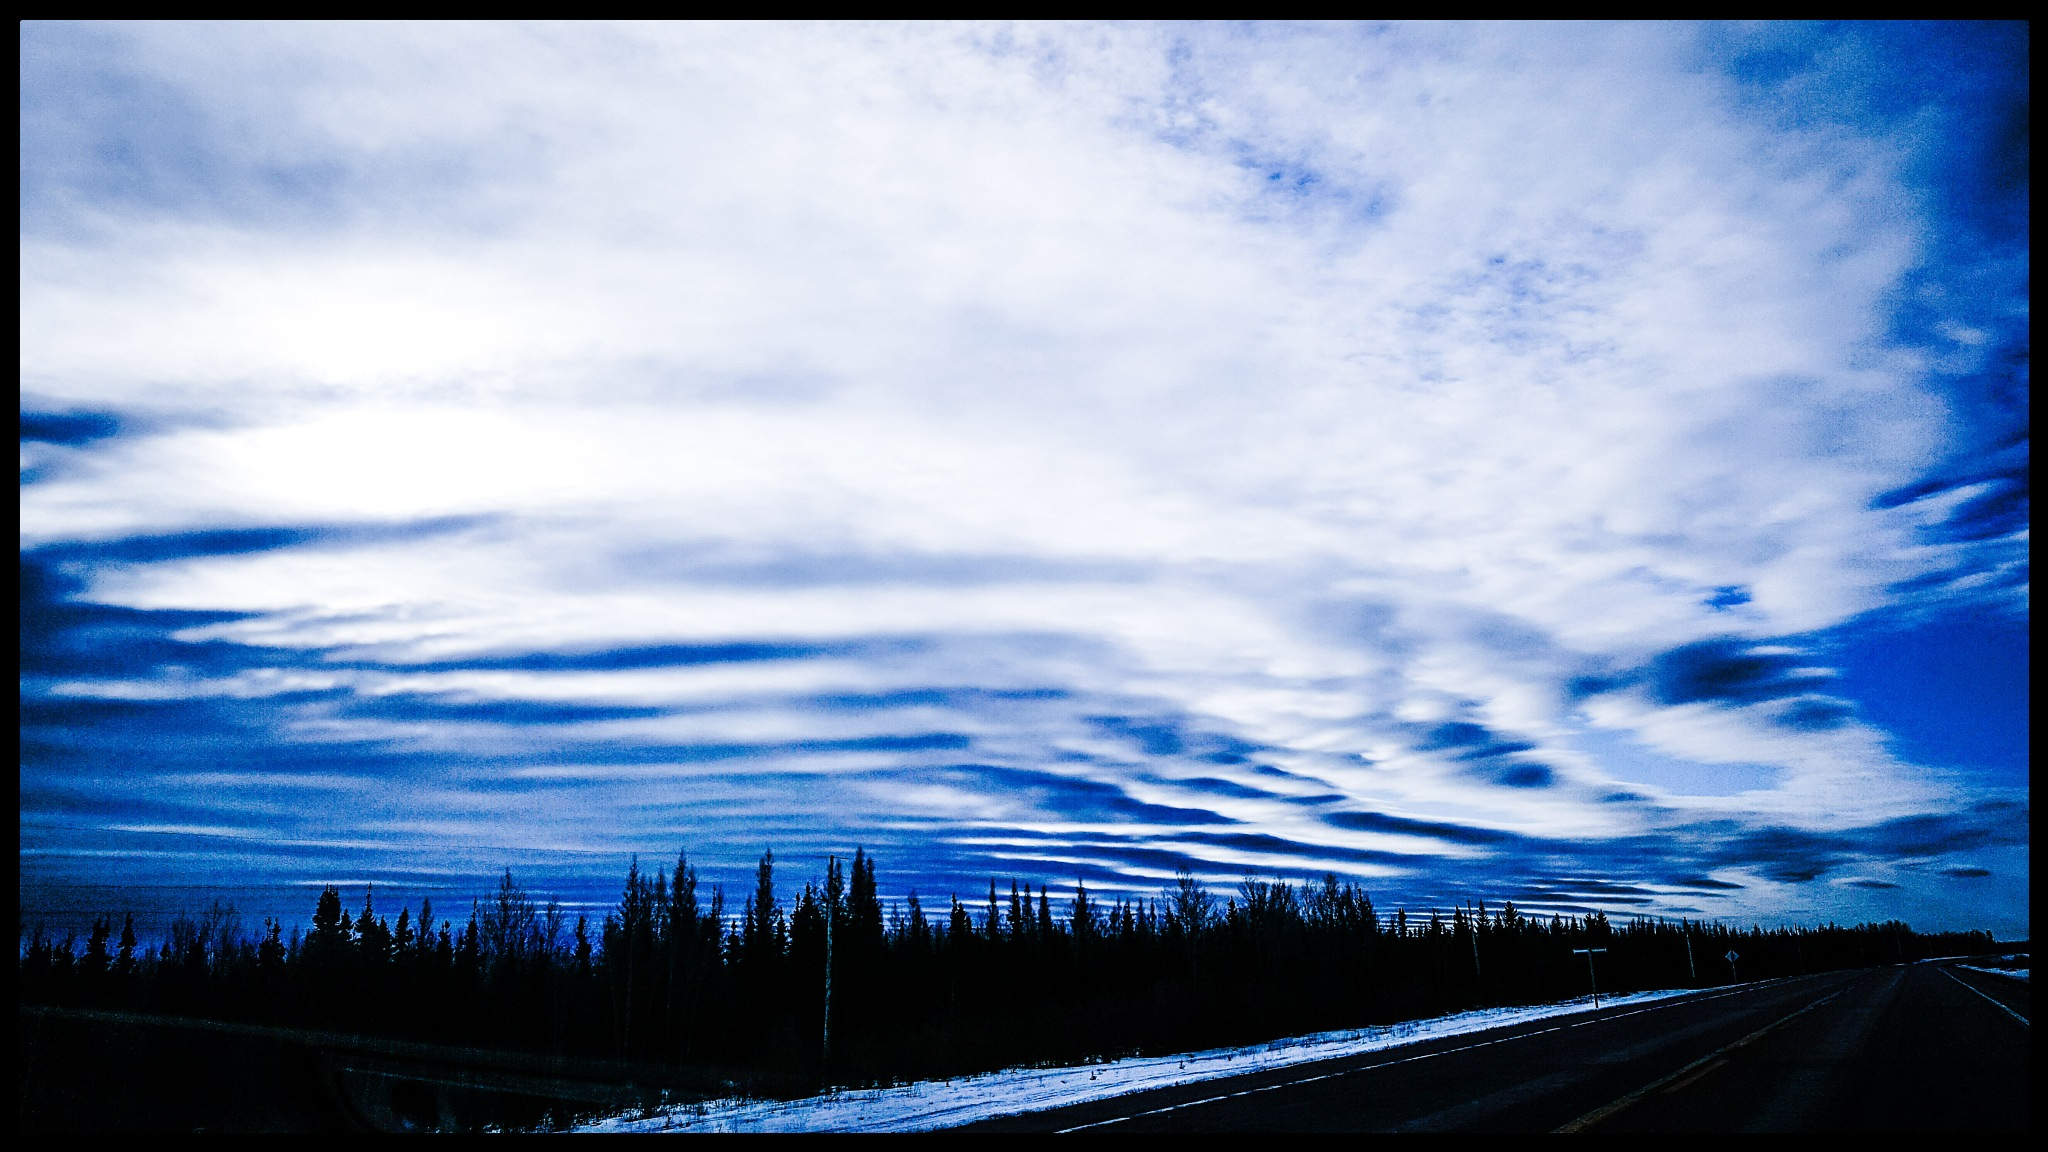 Clouds down the highway by Annette McCann